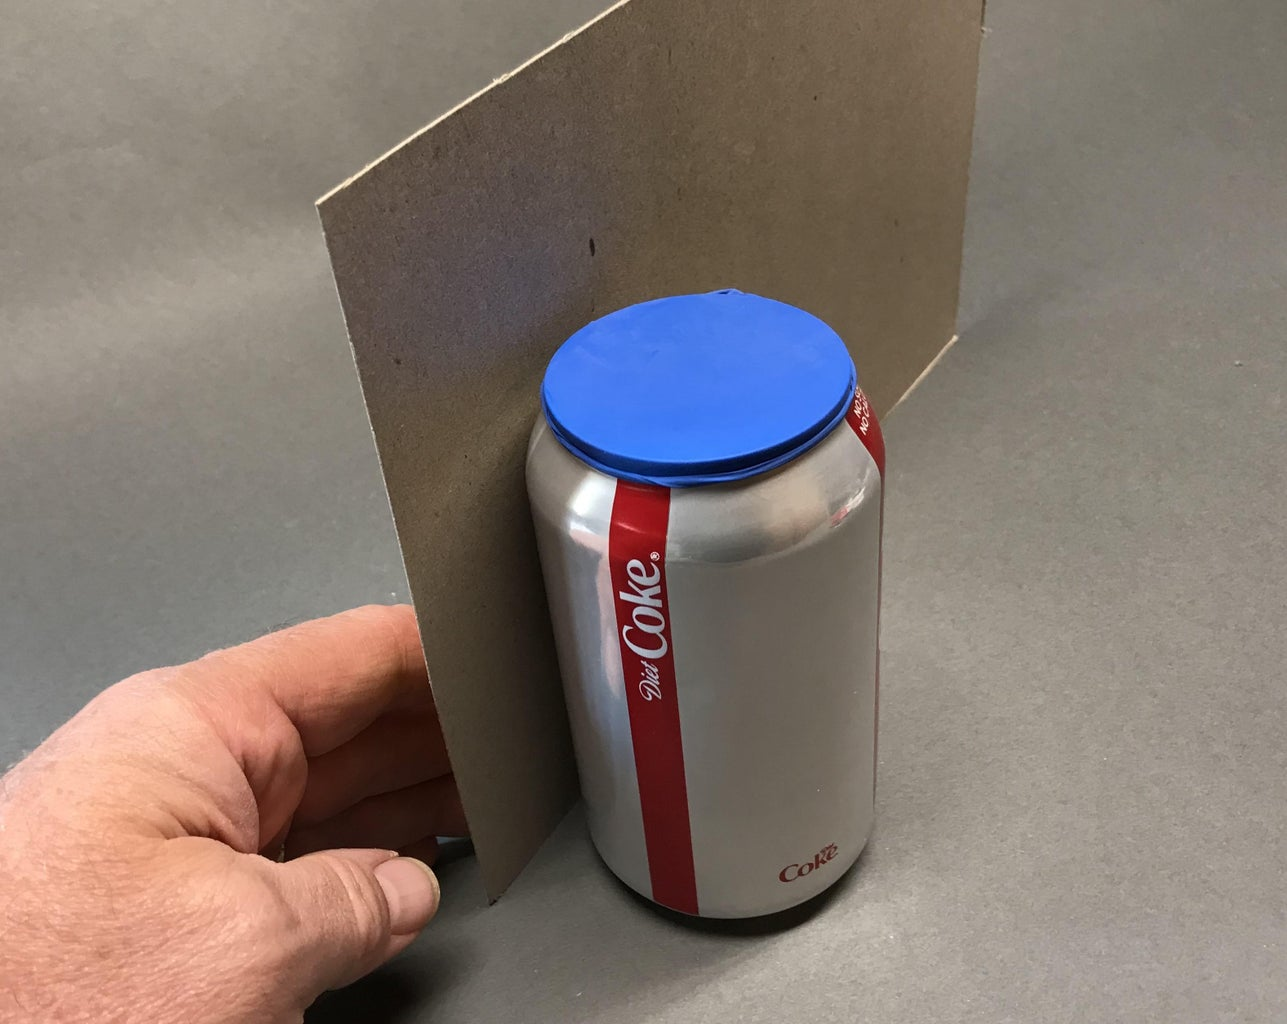 Attach the Coke Can to the Cardboard